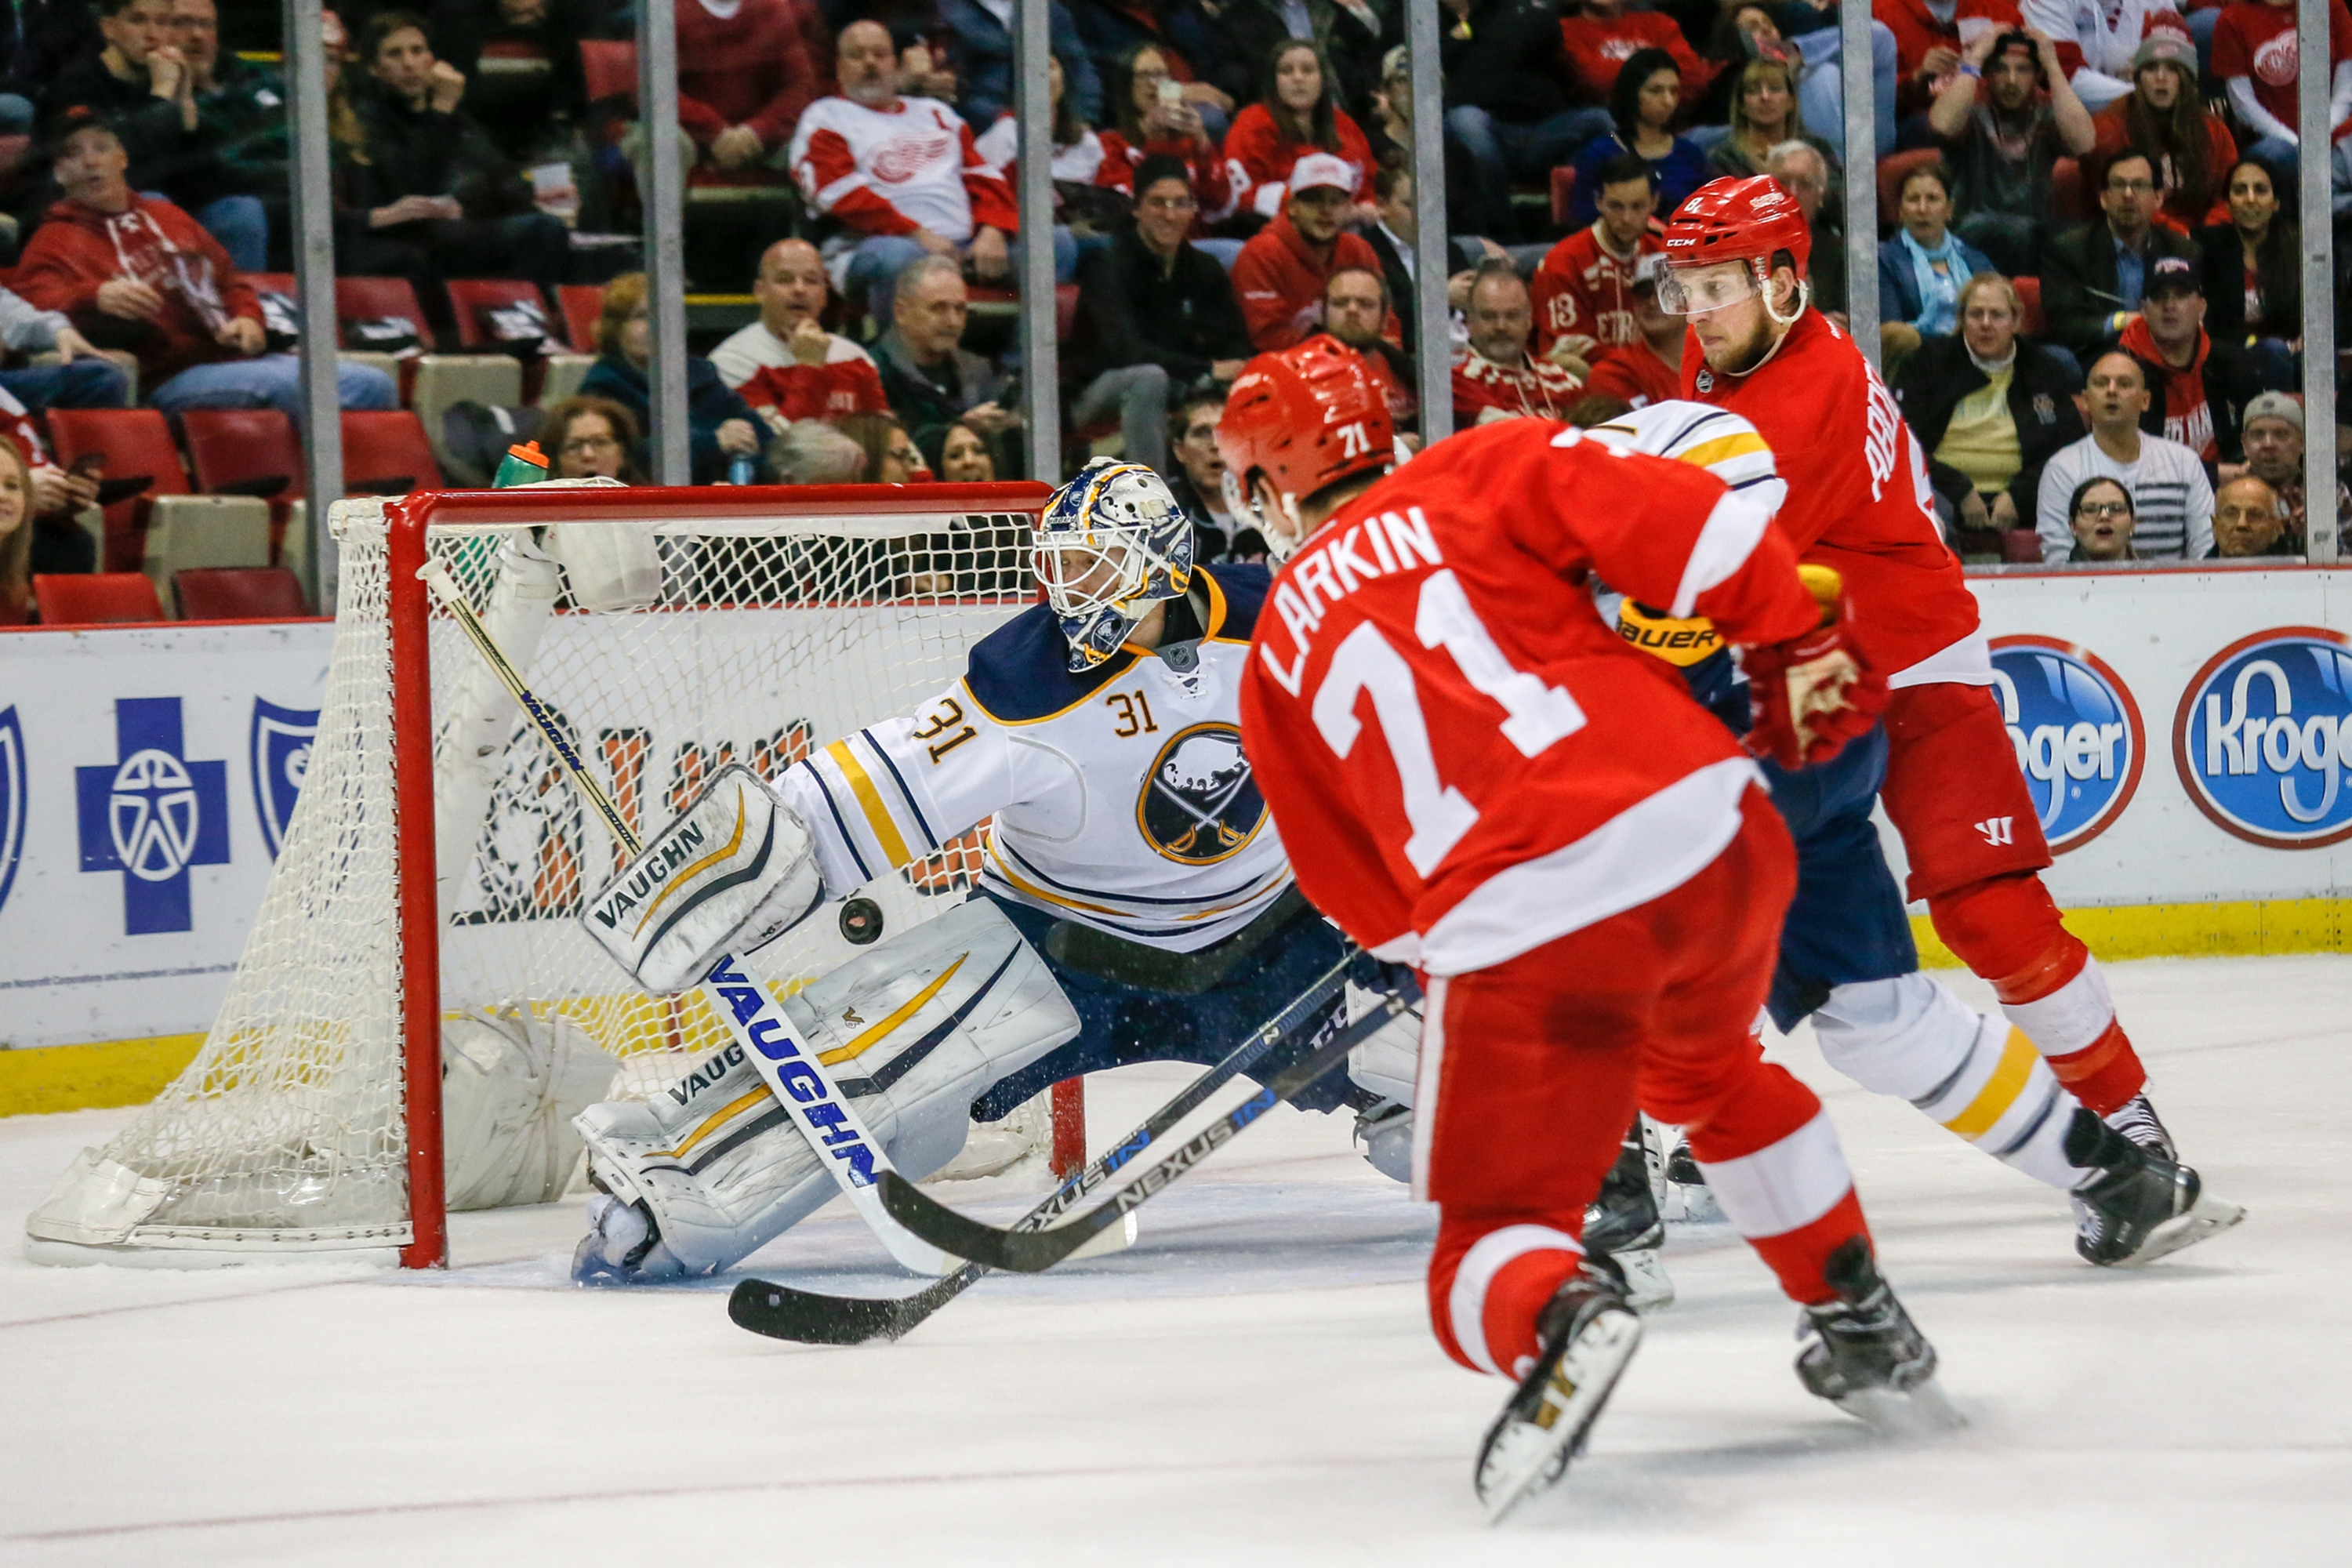 Detroit Red Wings' Dylan Larkin scores a goal on Buffalo Sabres goalie Chad Johnson during the first period. (Tribune News Service)